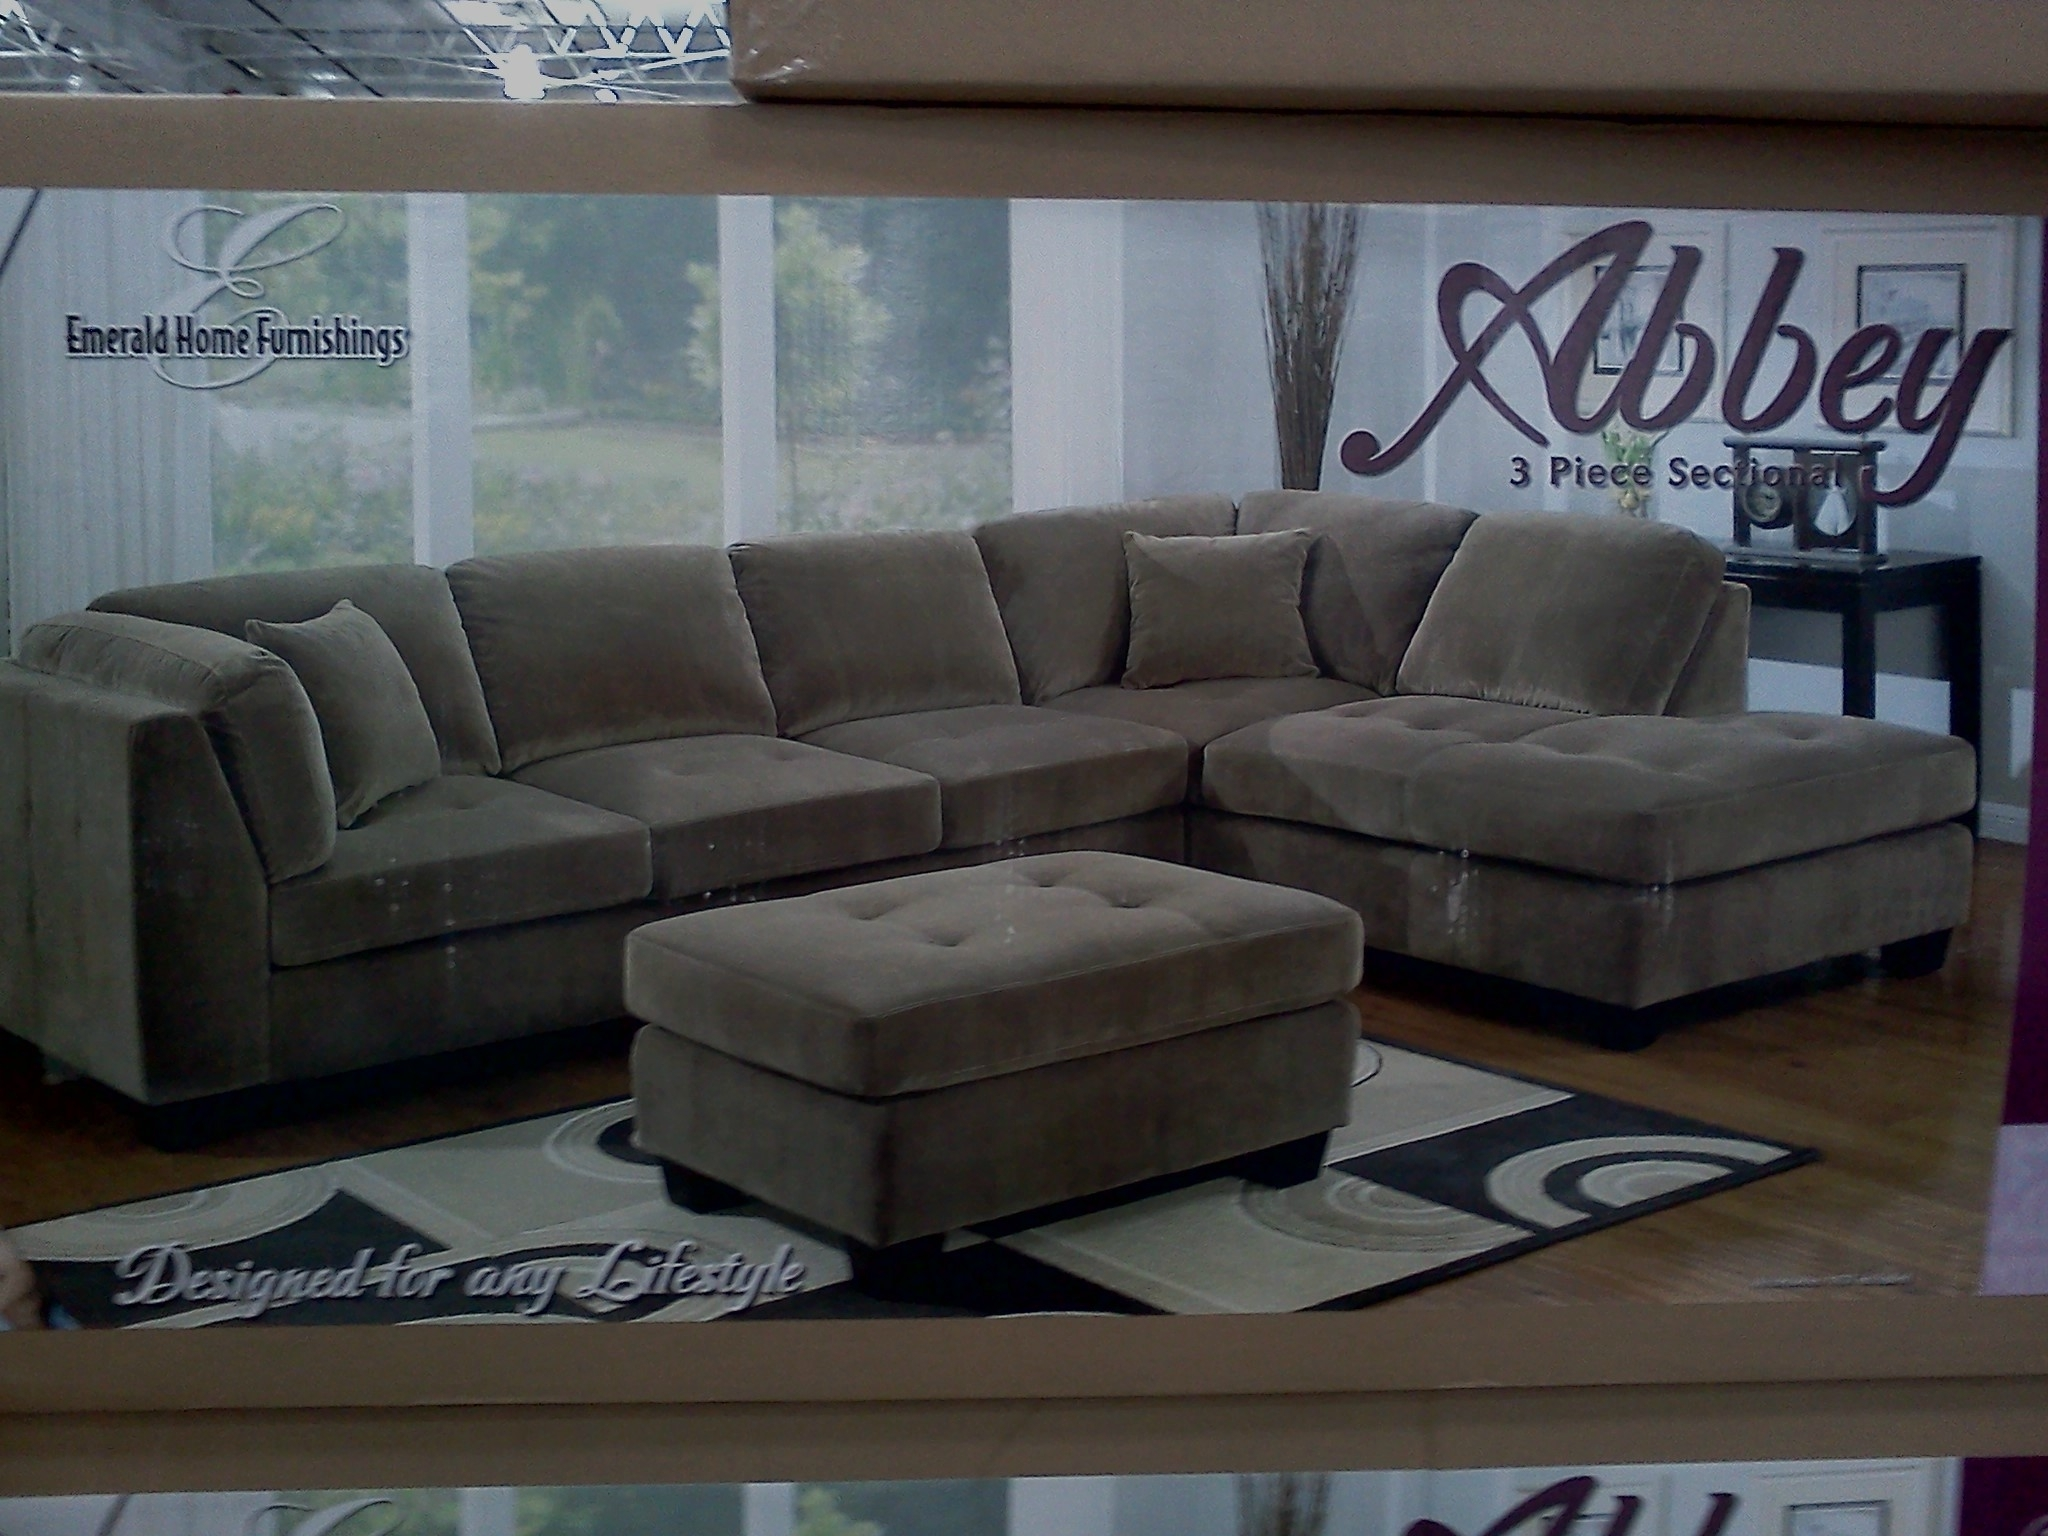 Amusing Sectional Sofas At Costco 11 About Remodel Sectional Sofas For Raleigh Nc Sectional Sofas (Image 6 of 10)